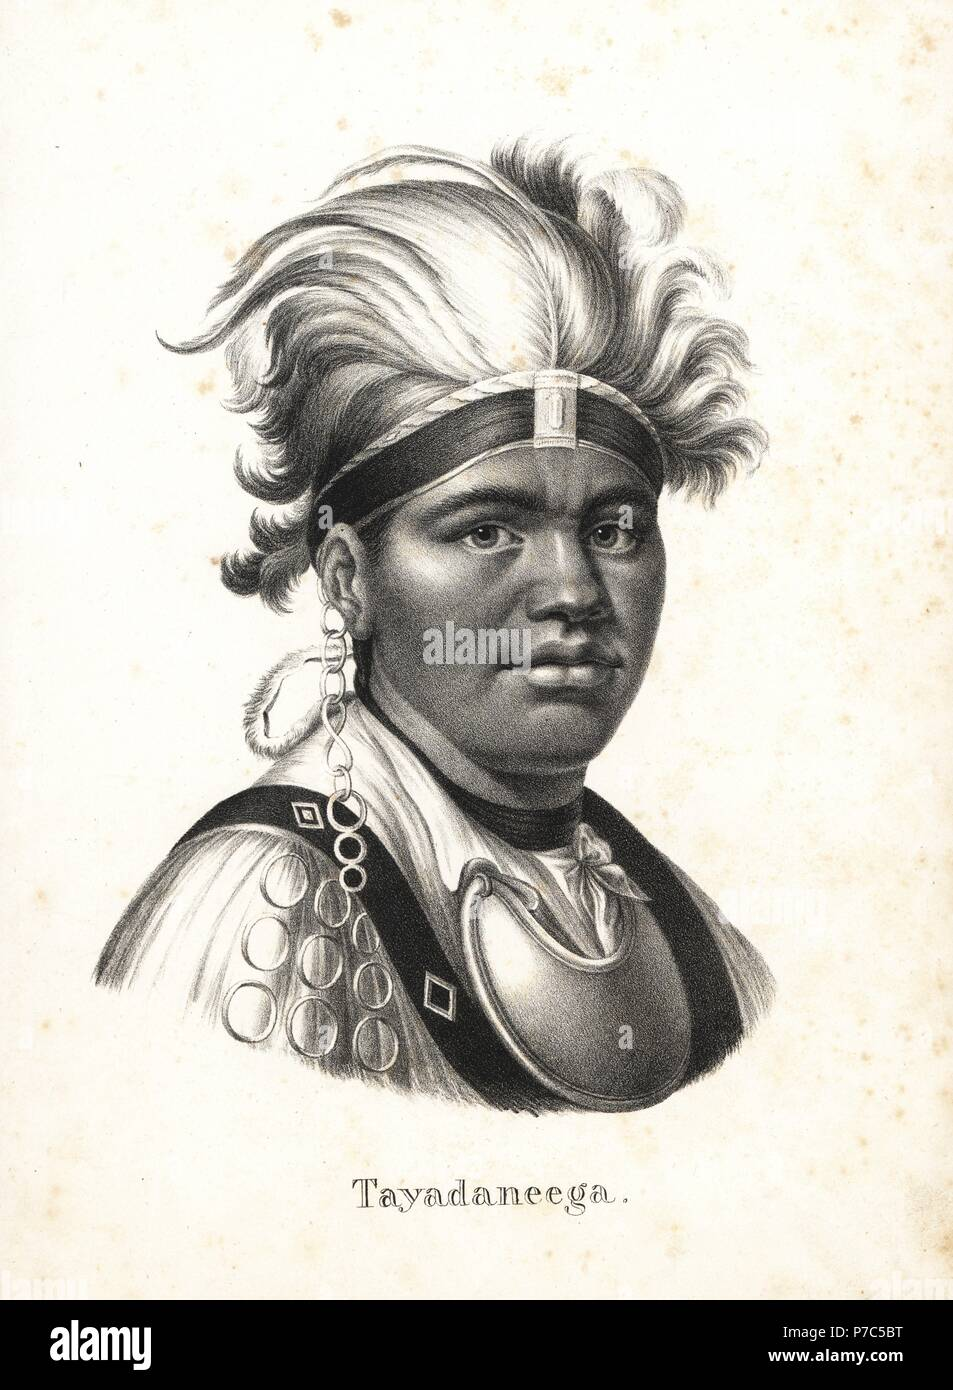 Tayadaneega, Thayendanegea or Joseph Brant (1743-1807), Mohawk chief and leader. He wears a feather headdress, metal gorget, shirt, and chain earring. Lithograph by Karl Joseph Brodtmann from Heinrich Rudolf Schinz's Illustrated Natural History of Men and Animals, 1836. - Stock Image